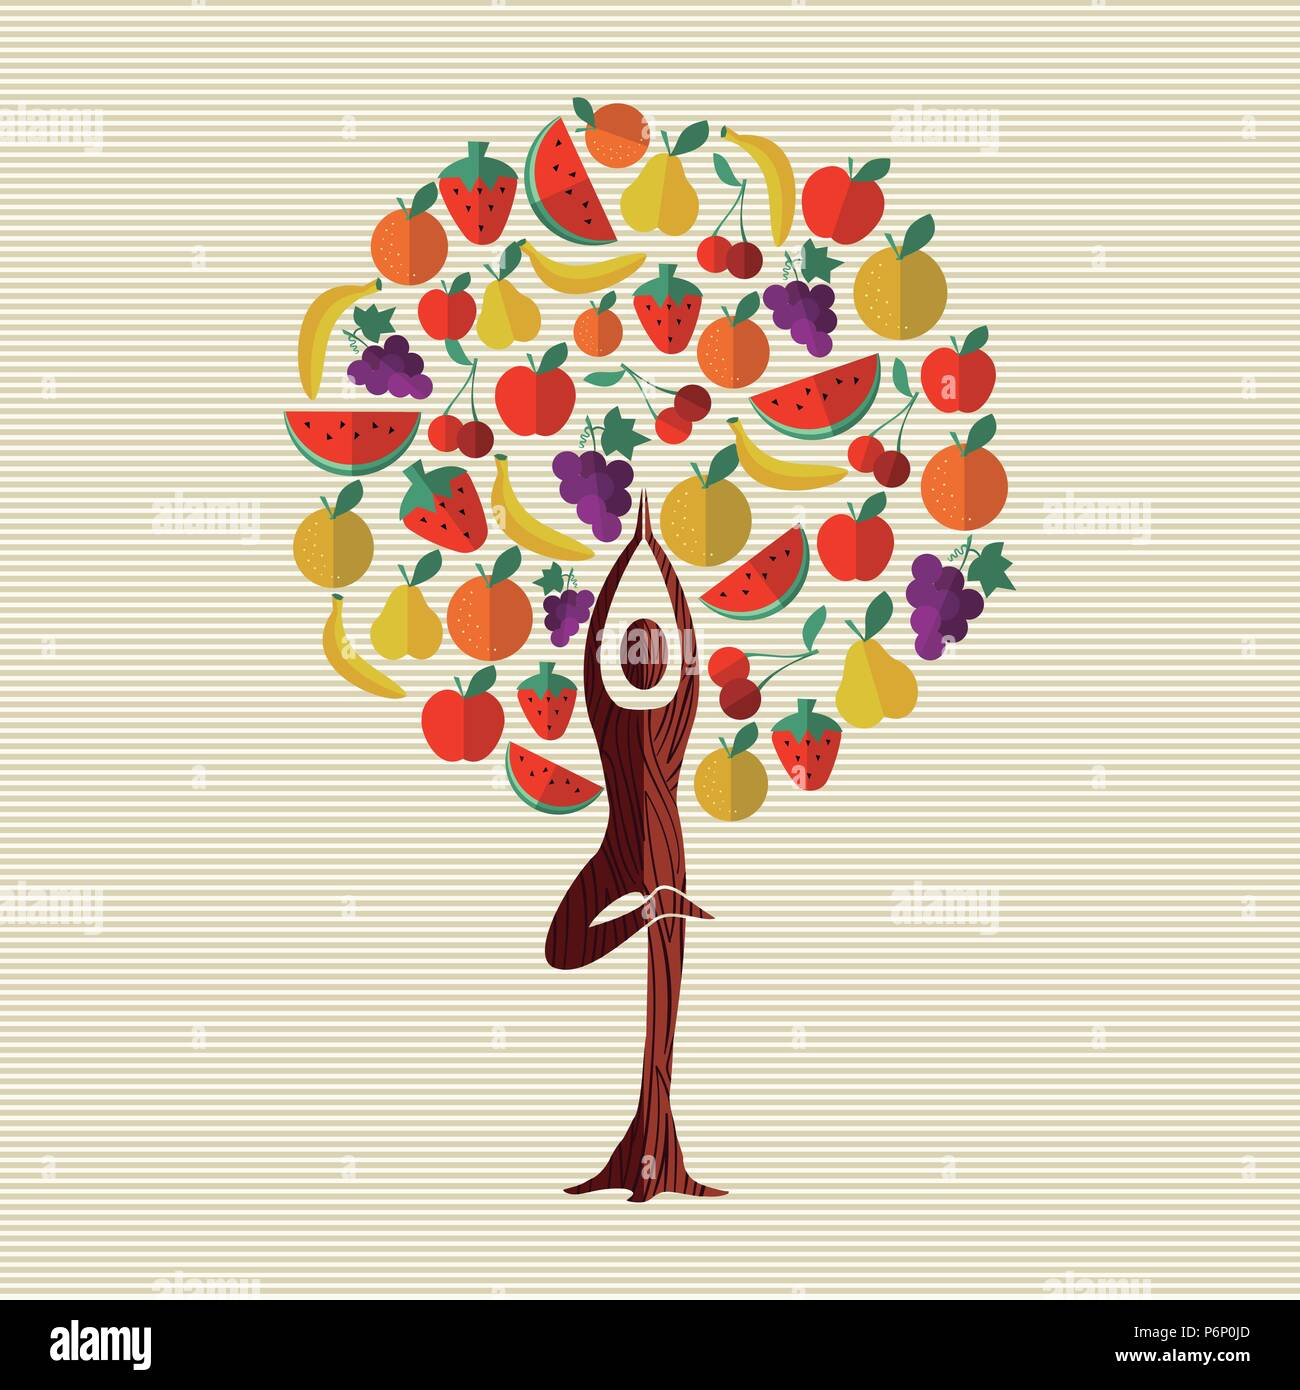 Tree made of fruit with woman doing yoga pose. Healthy eating and diet concept. Includes watermelon, apple, orange, banana. EPS10 vector. - Stock Vector